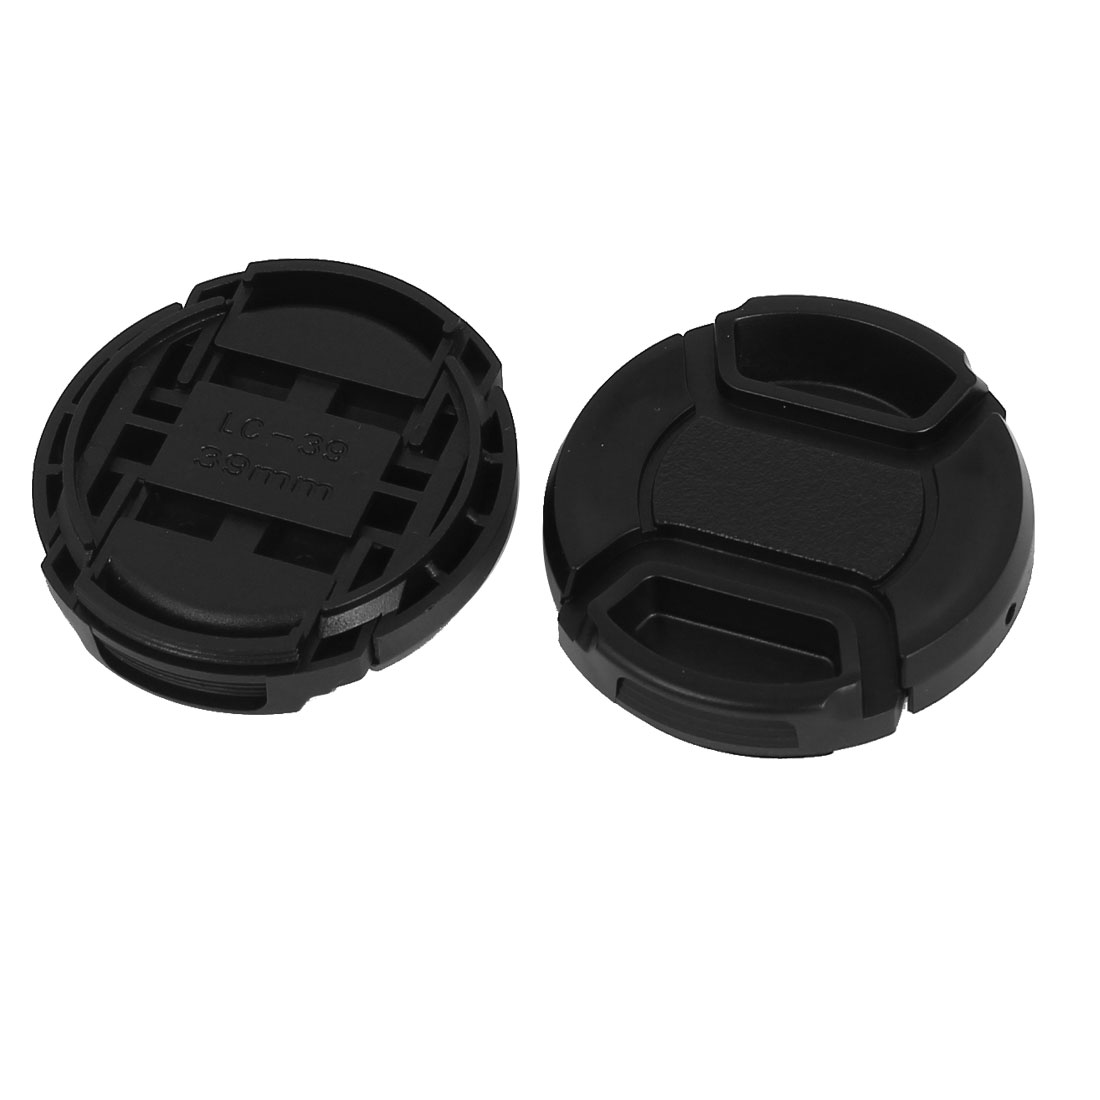 39mm Dia Plastic Front Snap Digital Camera Lens Caps Cover Protector 2Pcs